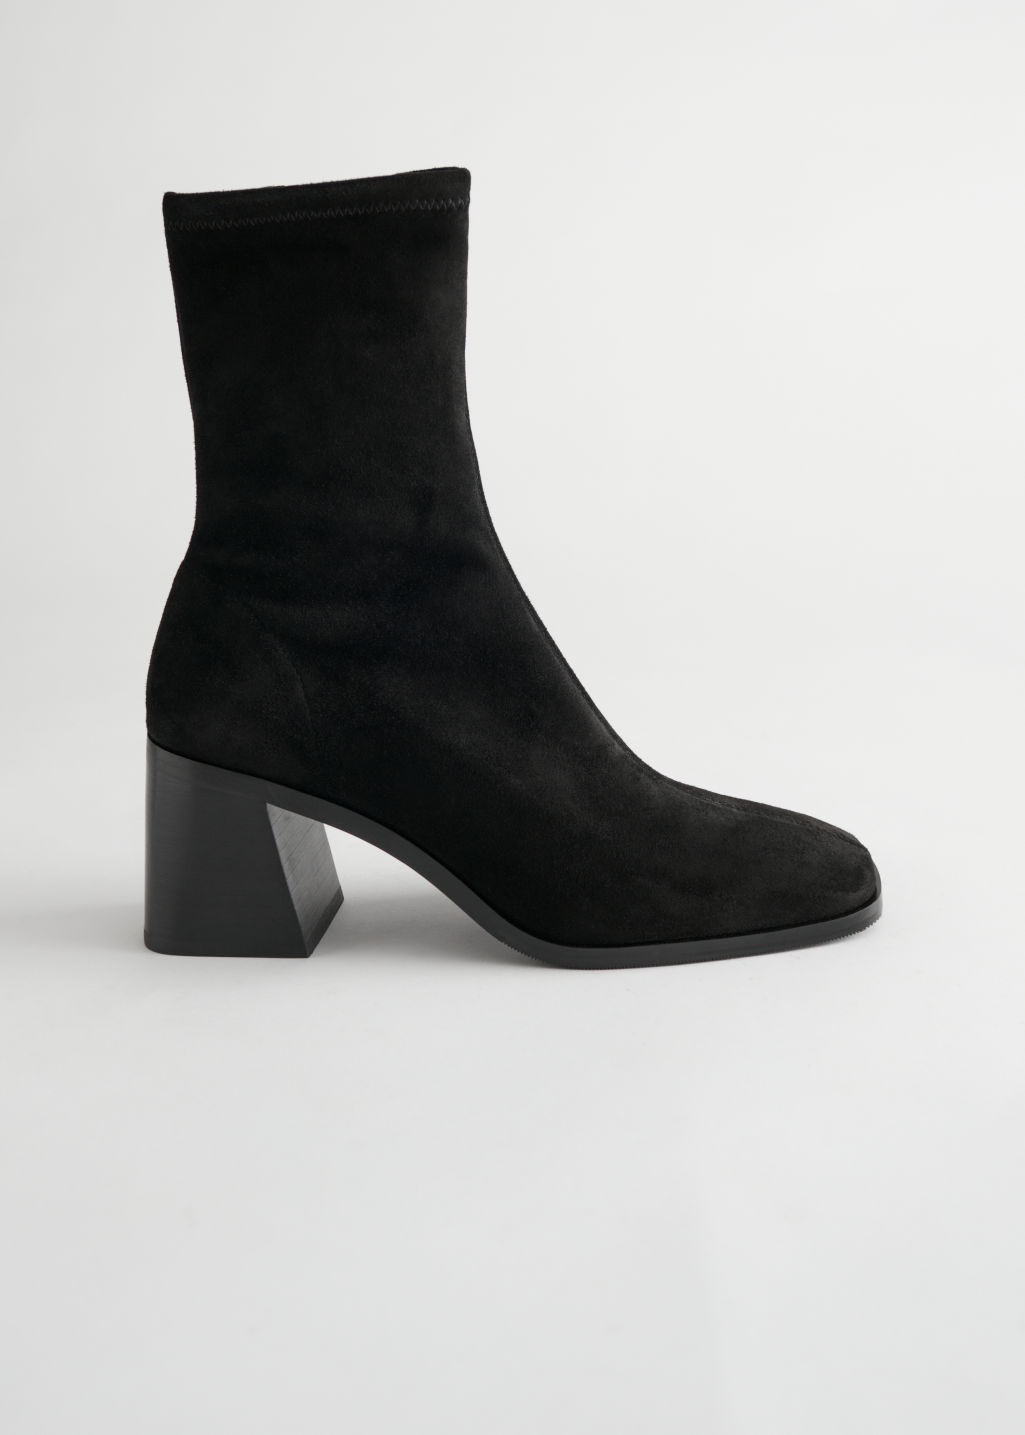 StillLife Side Image of Stories Geometric Heel Suede Sock Boots in Black